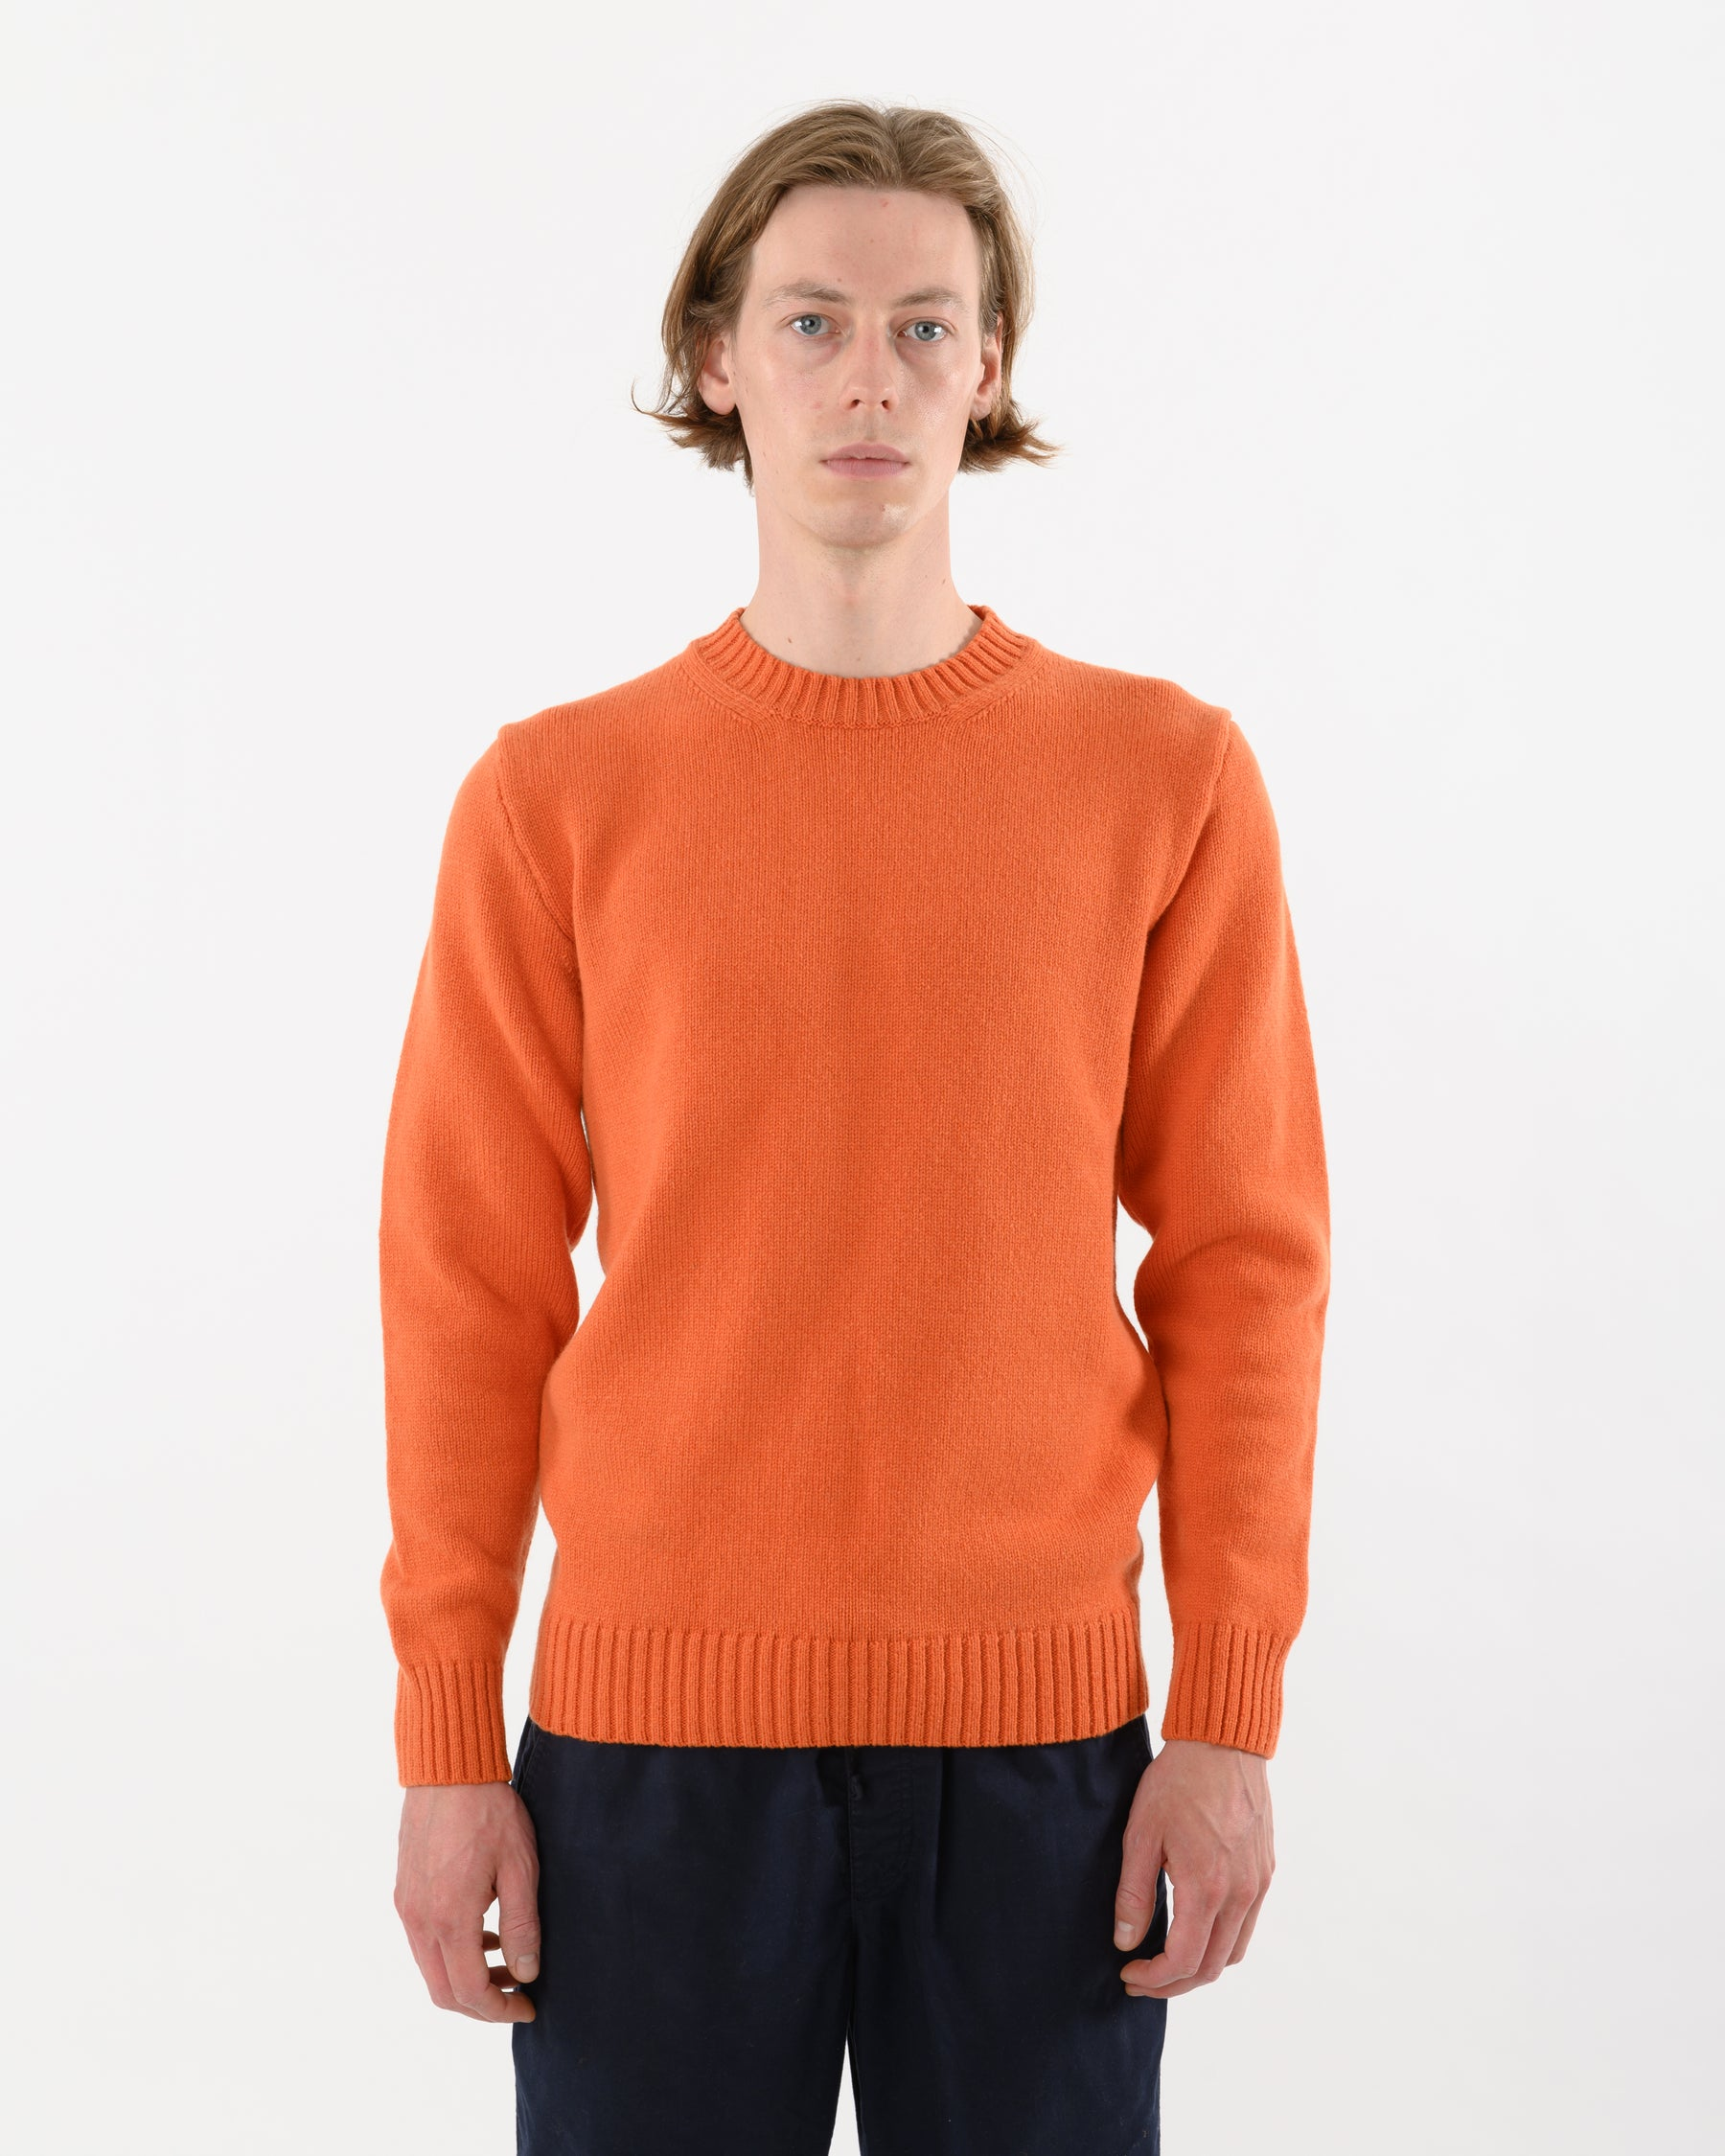 Staple Lambswool Crew • Orange